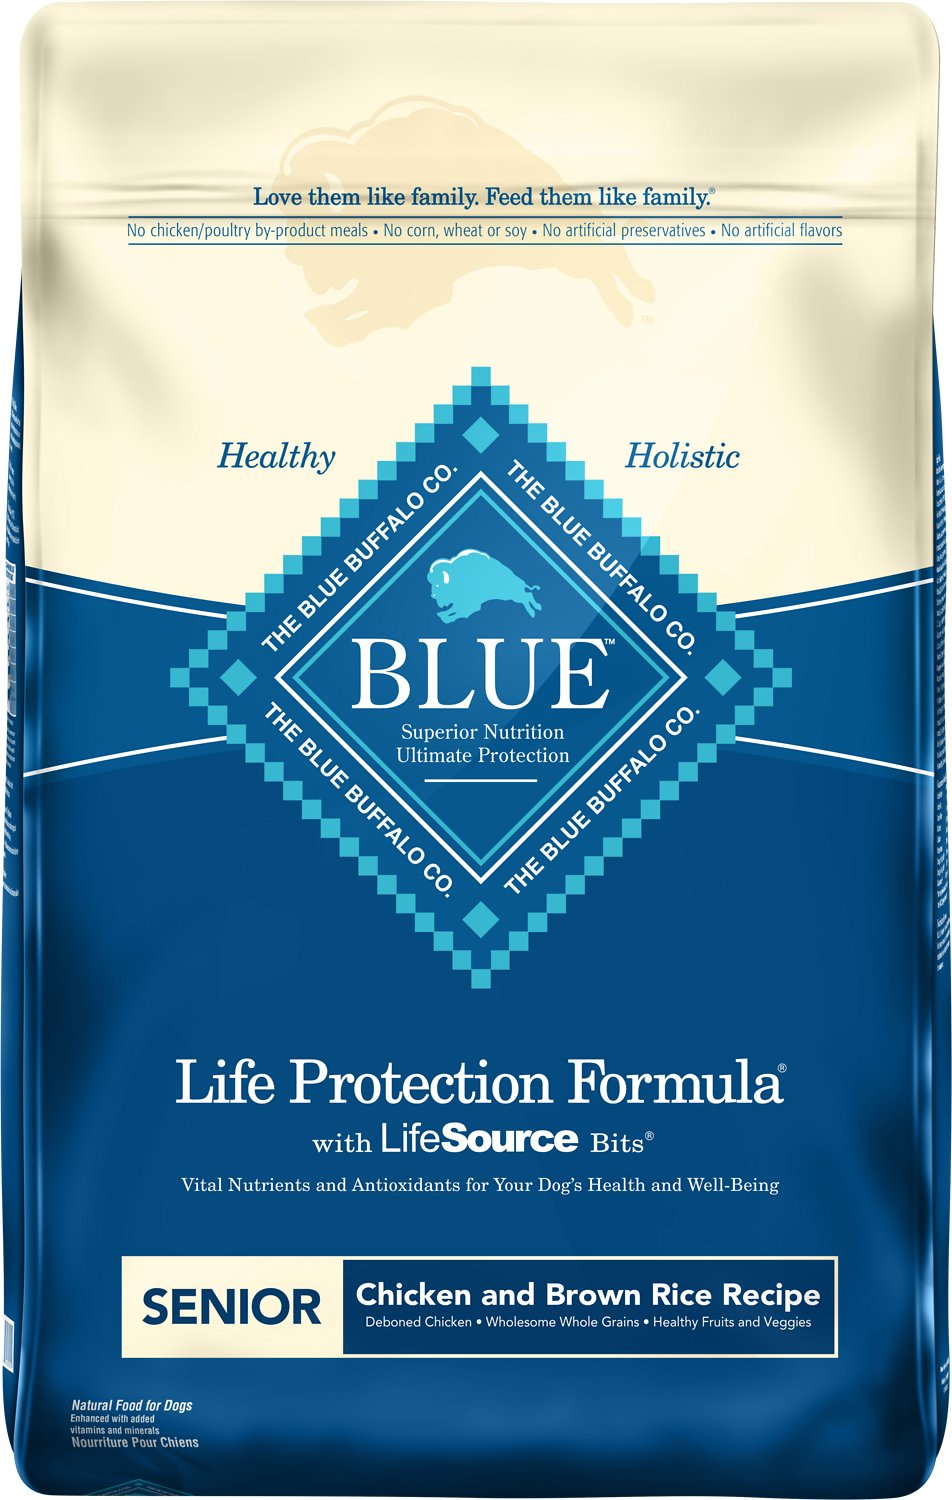 Blue Buffalo Life Protection Formula Senior Chicken & Brown Rice Recipe Dry Dog Food Image